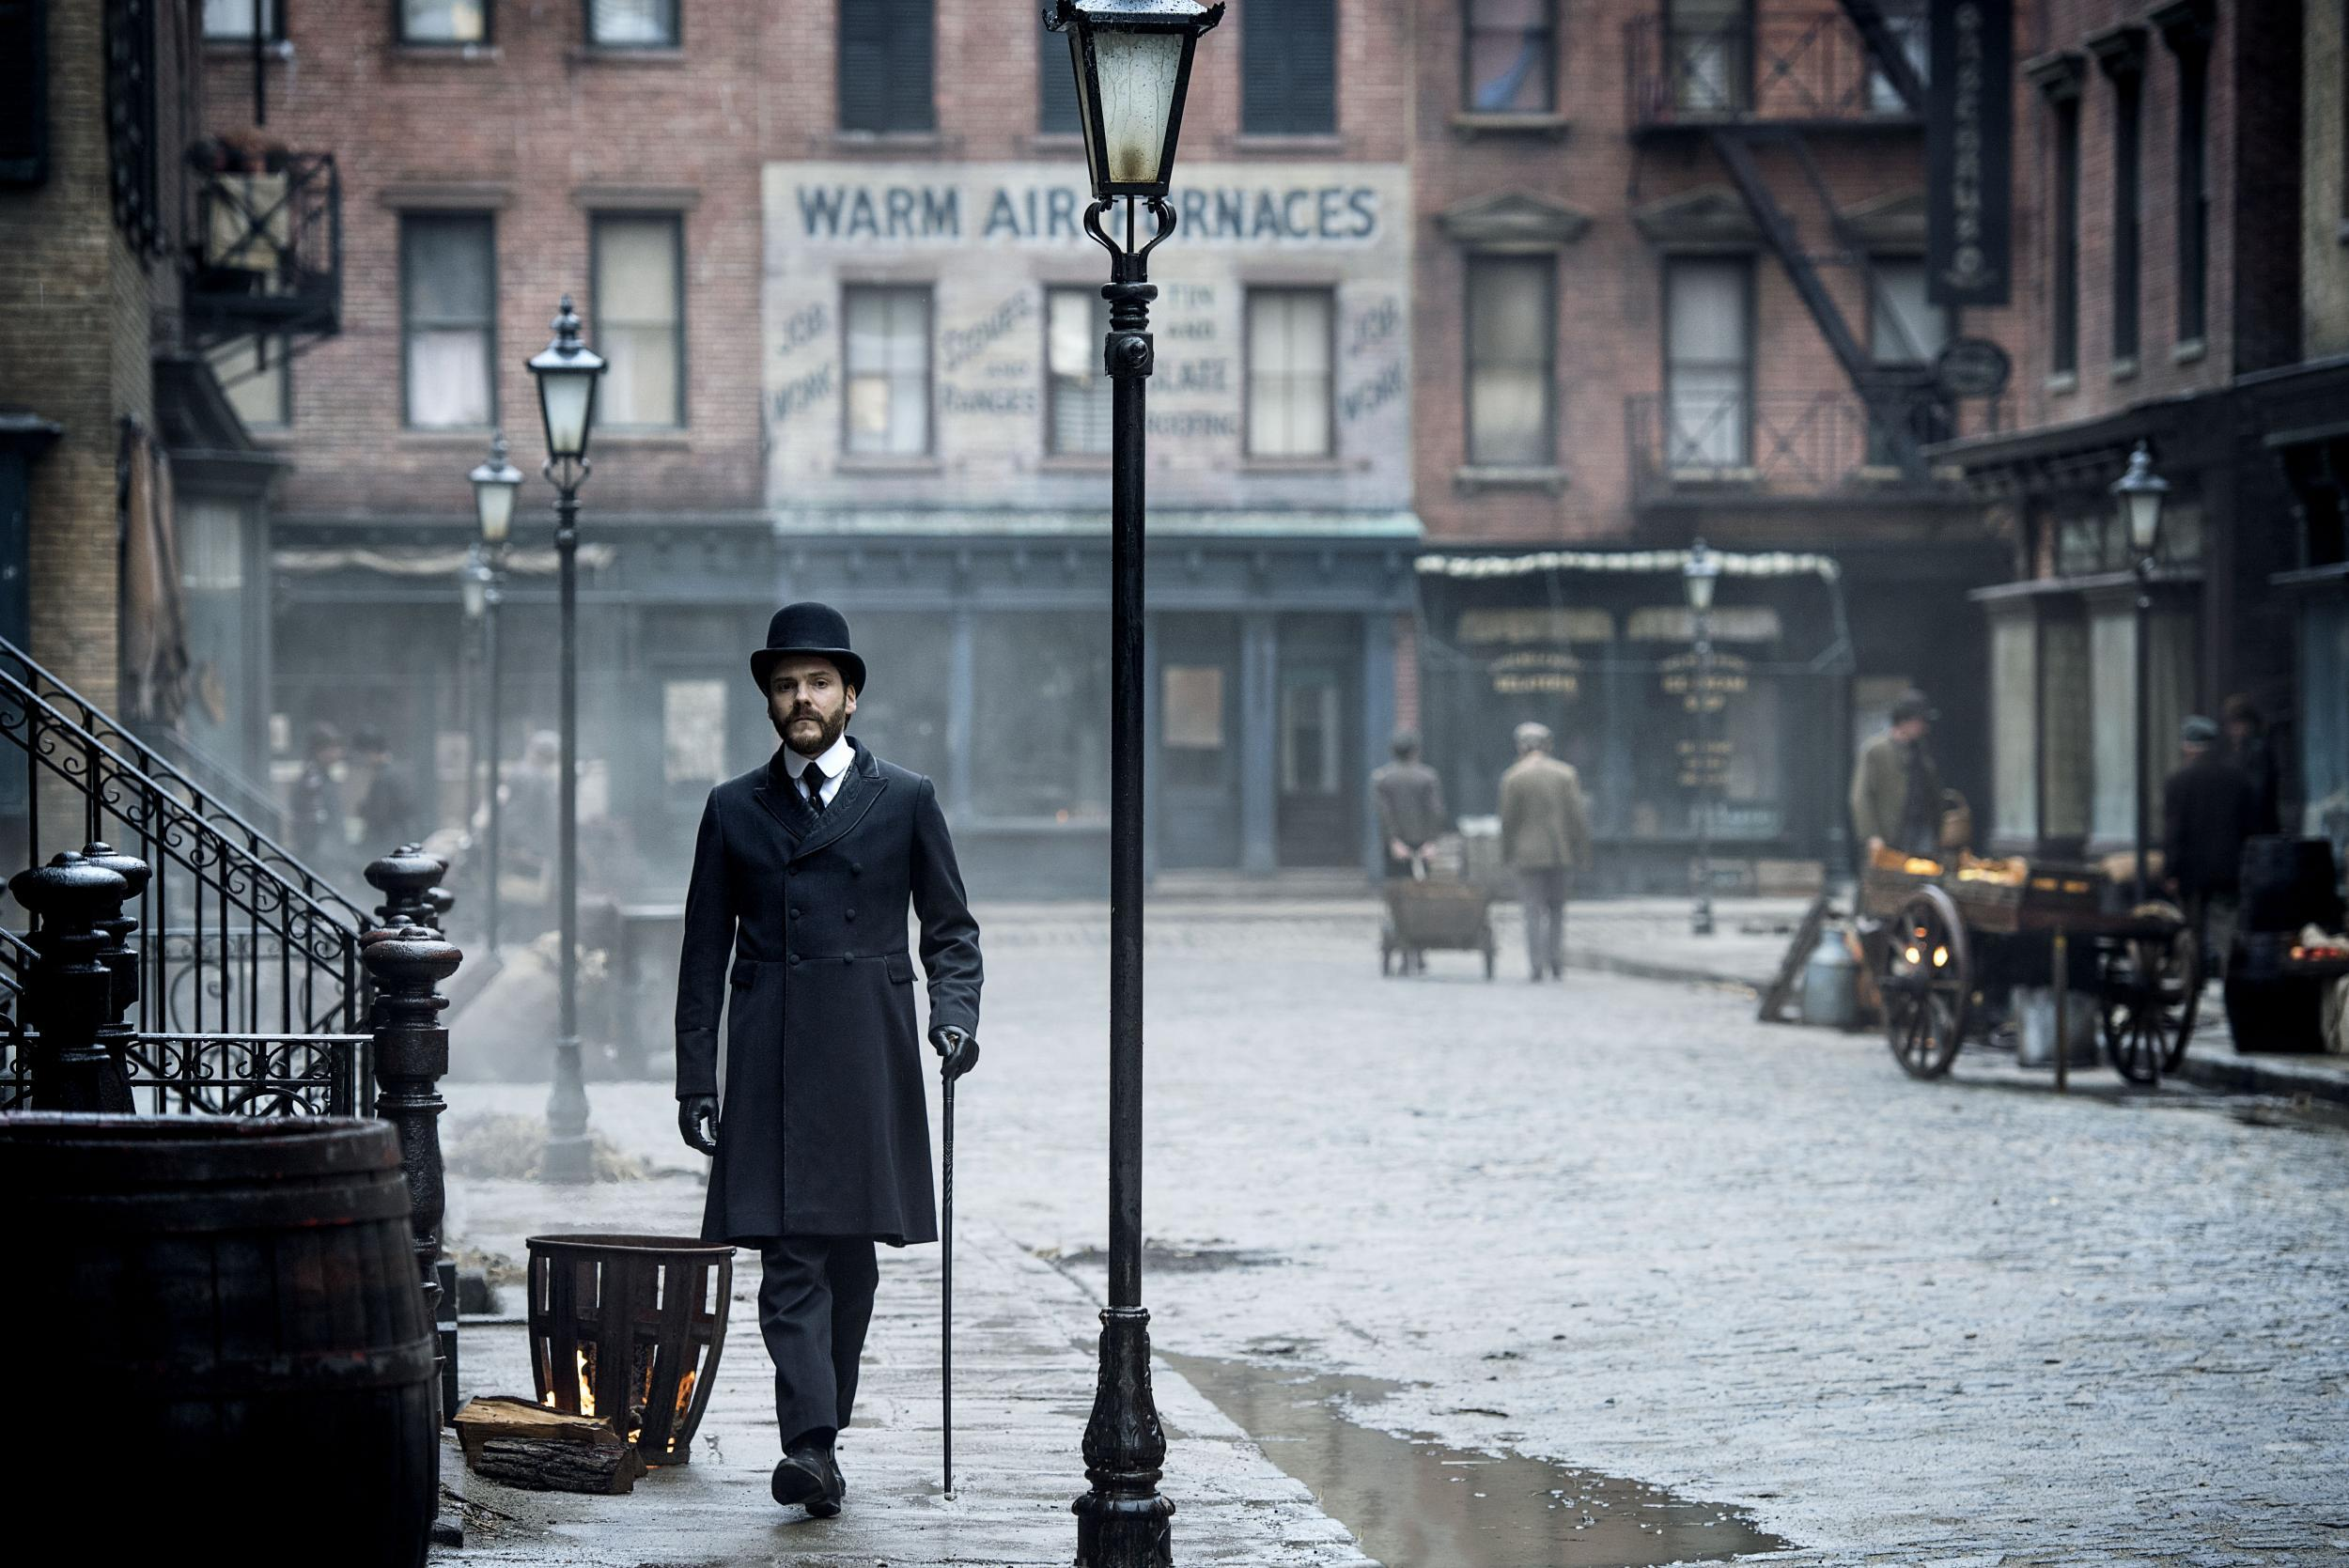 The Alienist: 'Grisly' crime chiller gets UK release date on Netflix